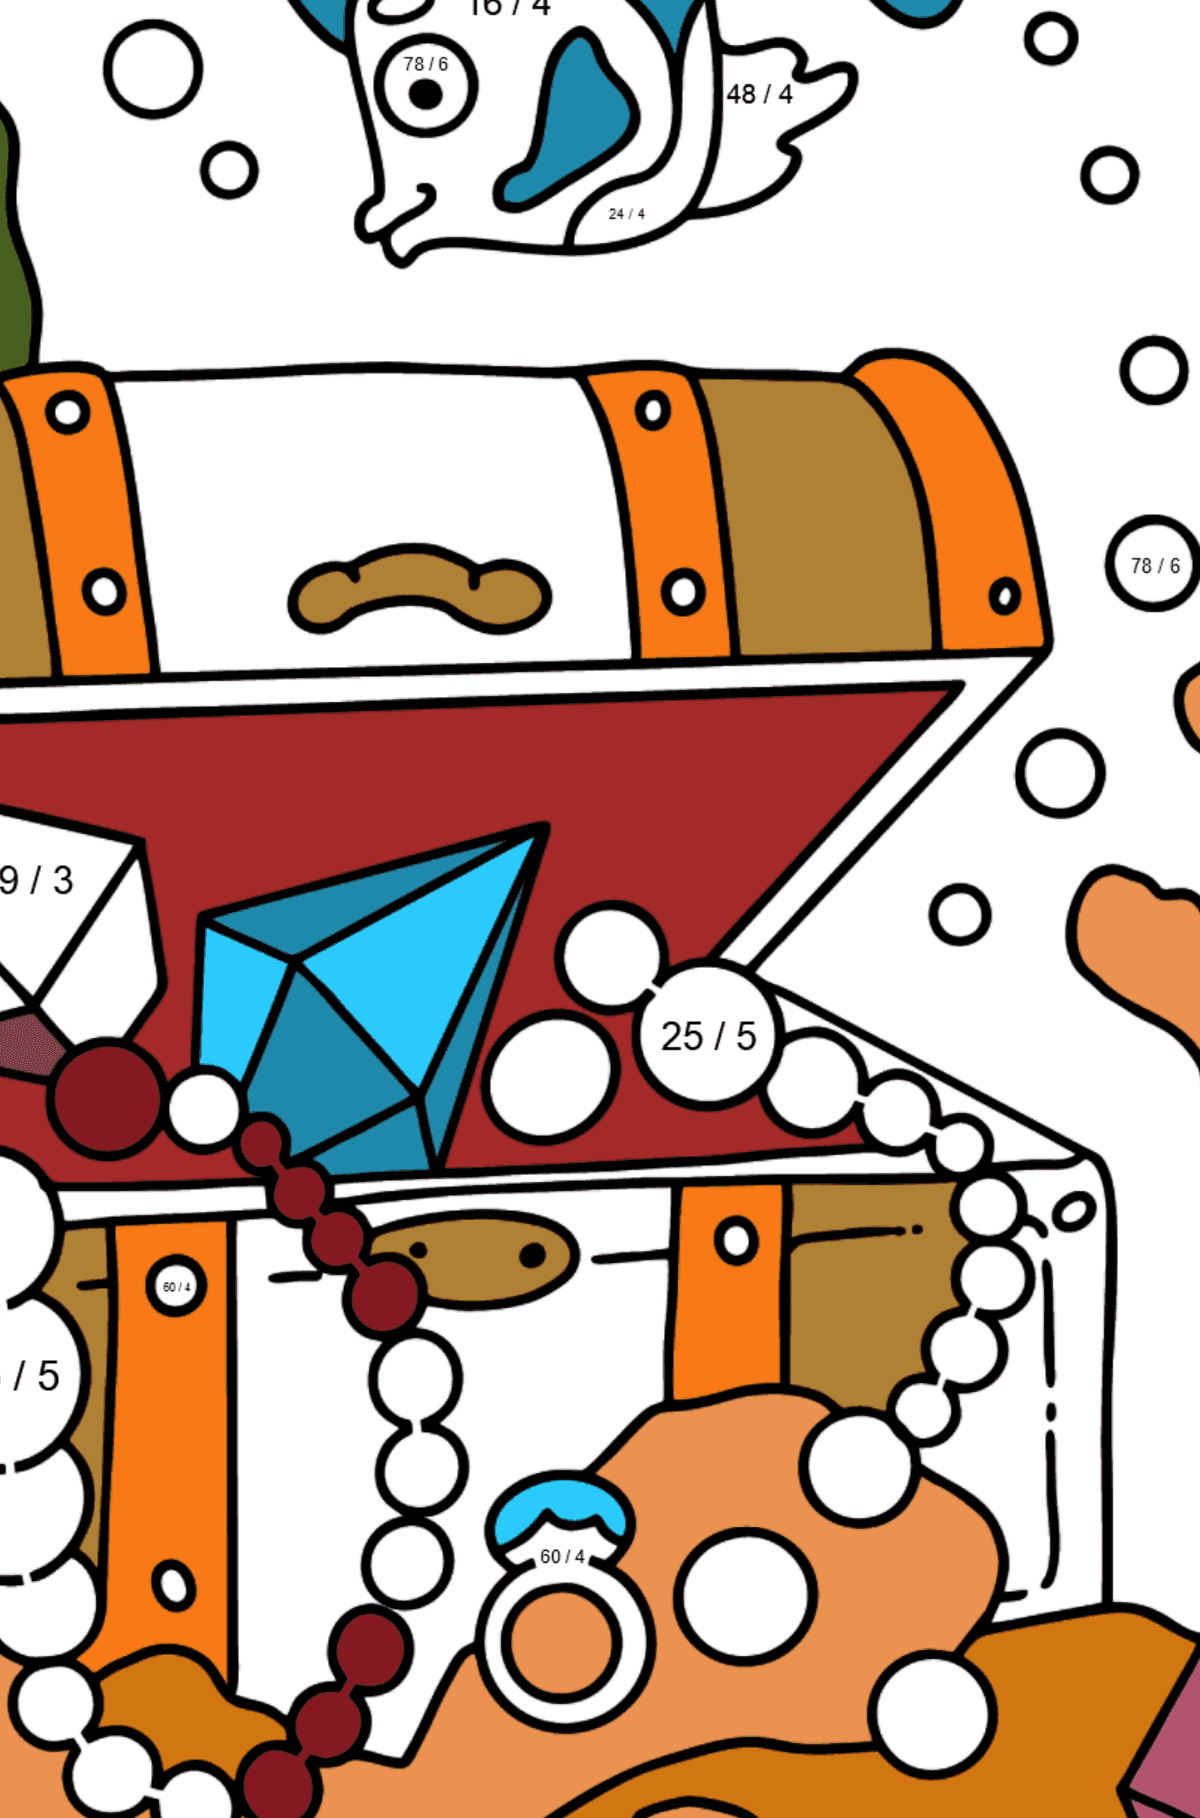 Coloring Page - A Fish is Looking for a Treasure - Math Coloring - Division for Kids